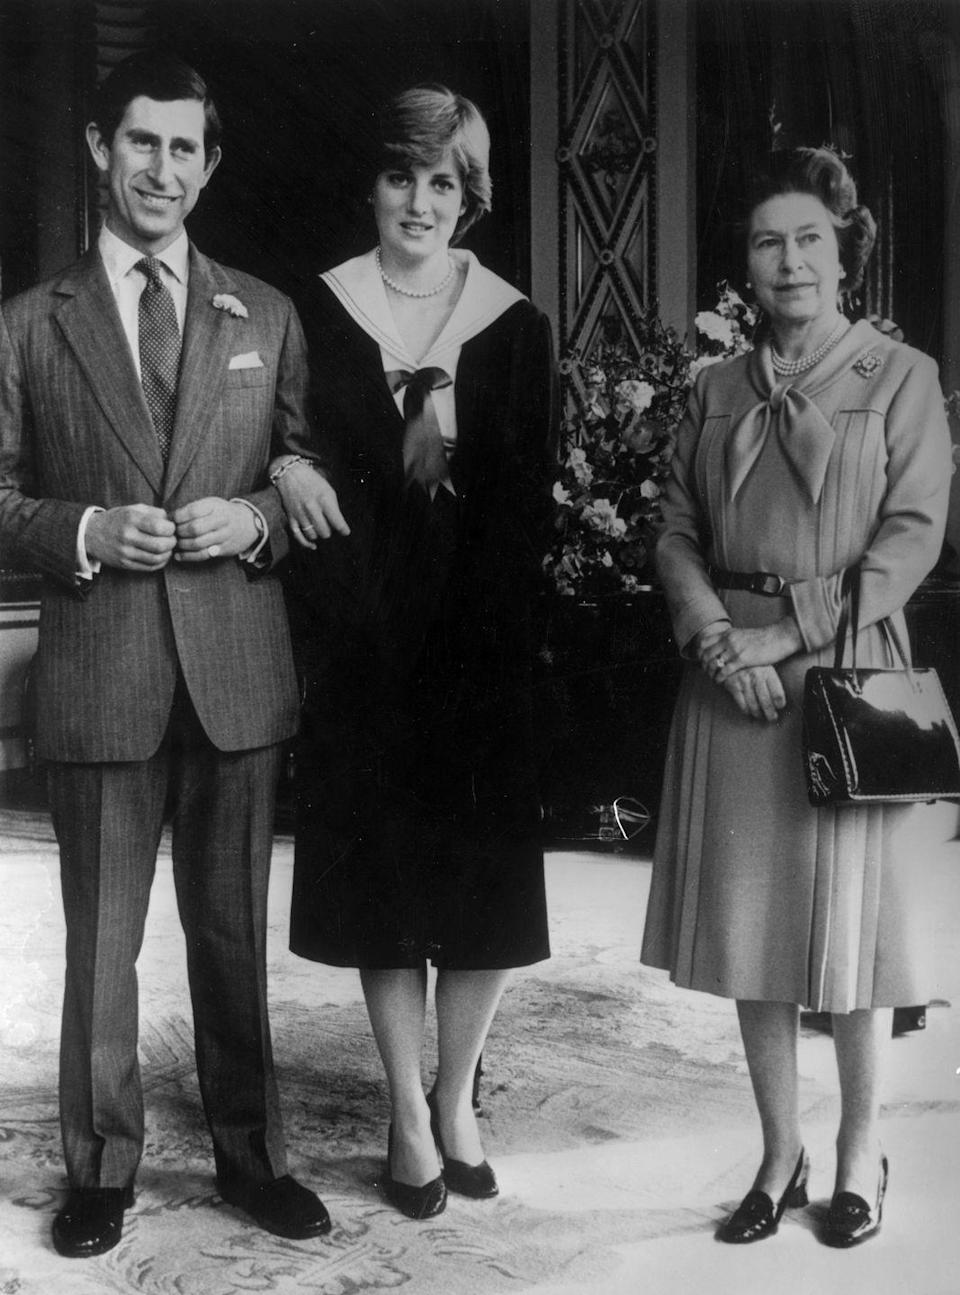 <p>Prince Charles and Diana pose with Queen Elizabeth II at Buckingham Palace after she gave her consent for their wedding.</p>